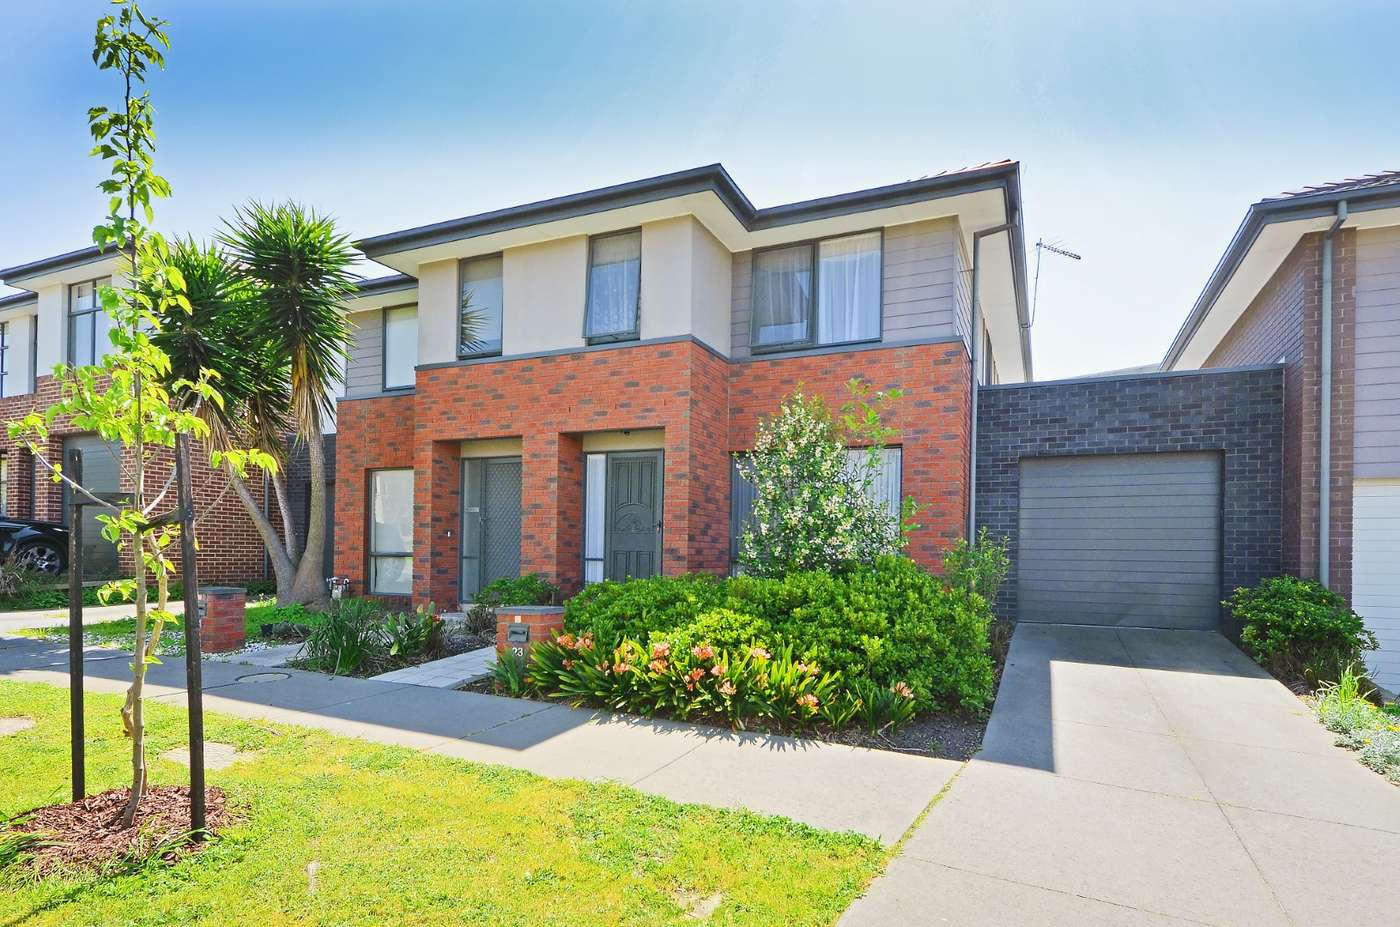 Main view of Homely house listing, 23 Camville Road, Mulgrave, VIC 3170